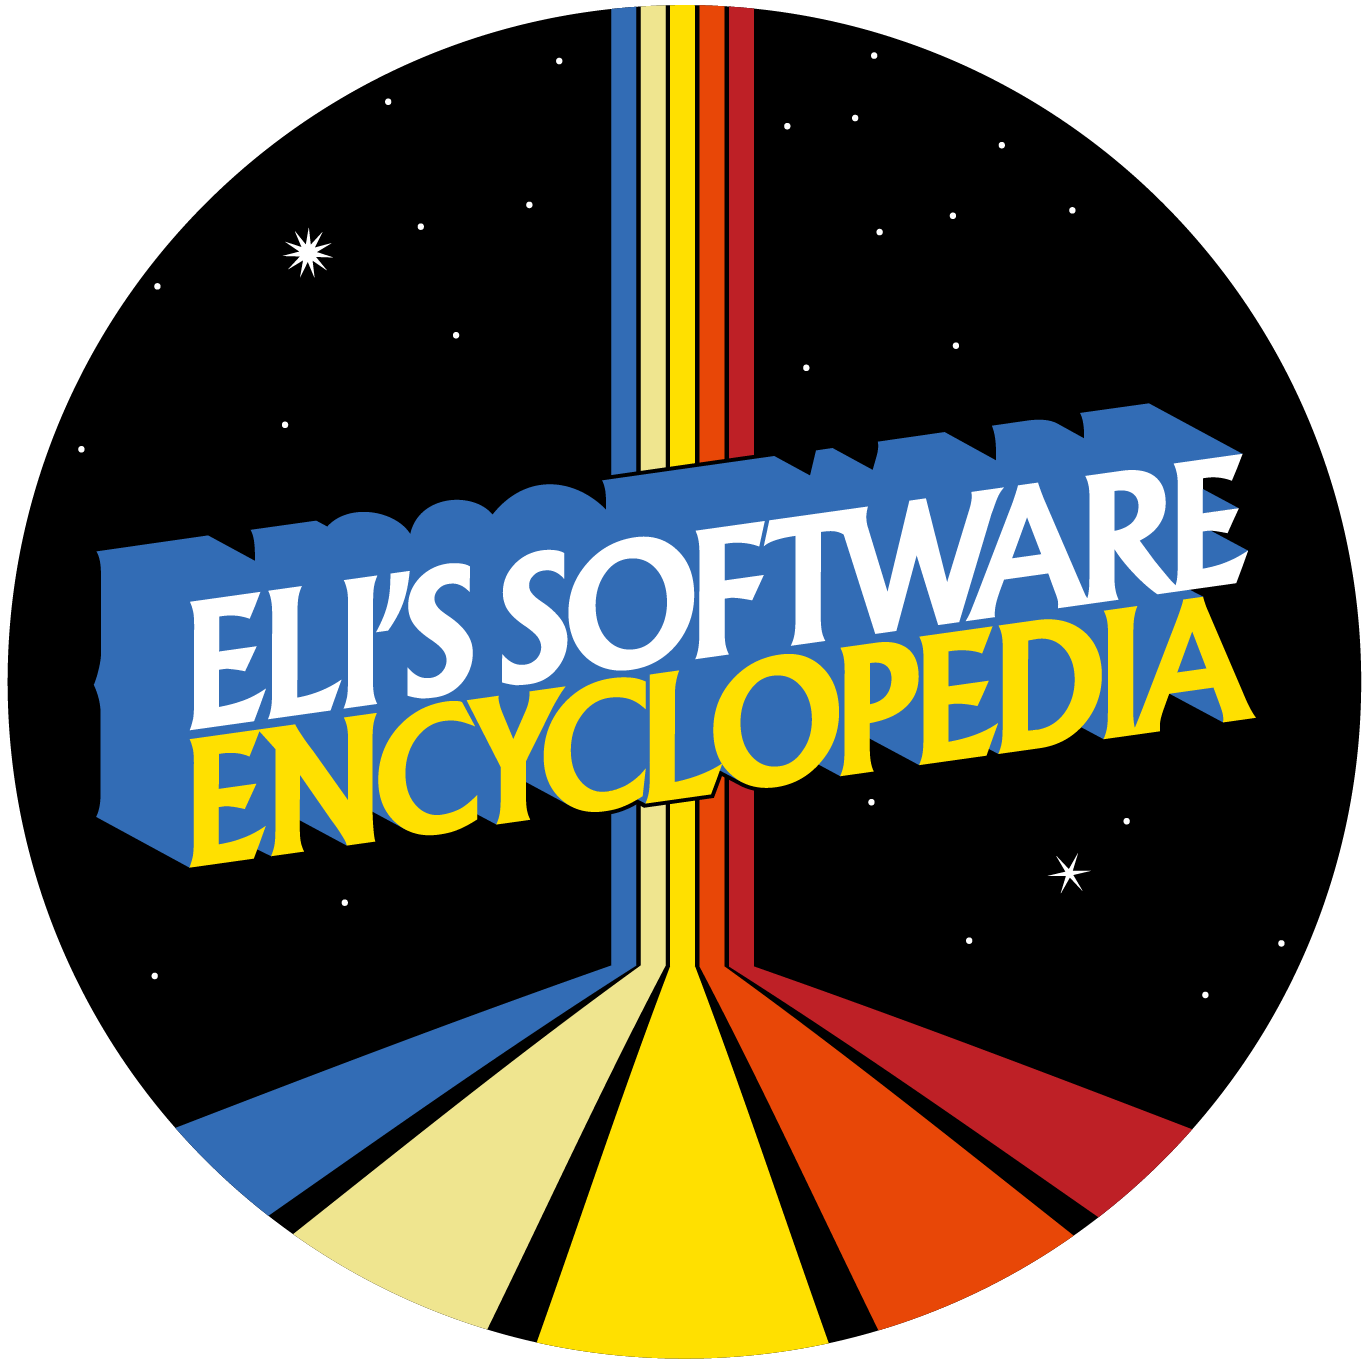 Eli's Software Encyclopedia